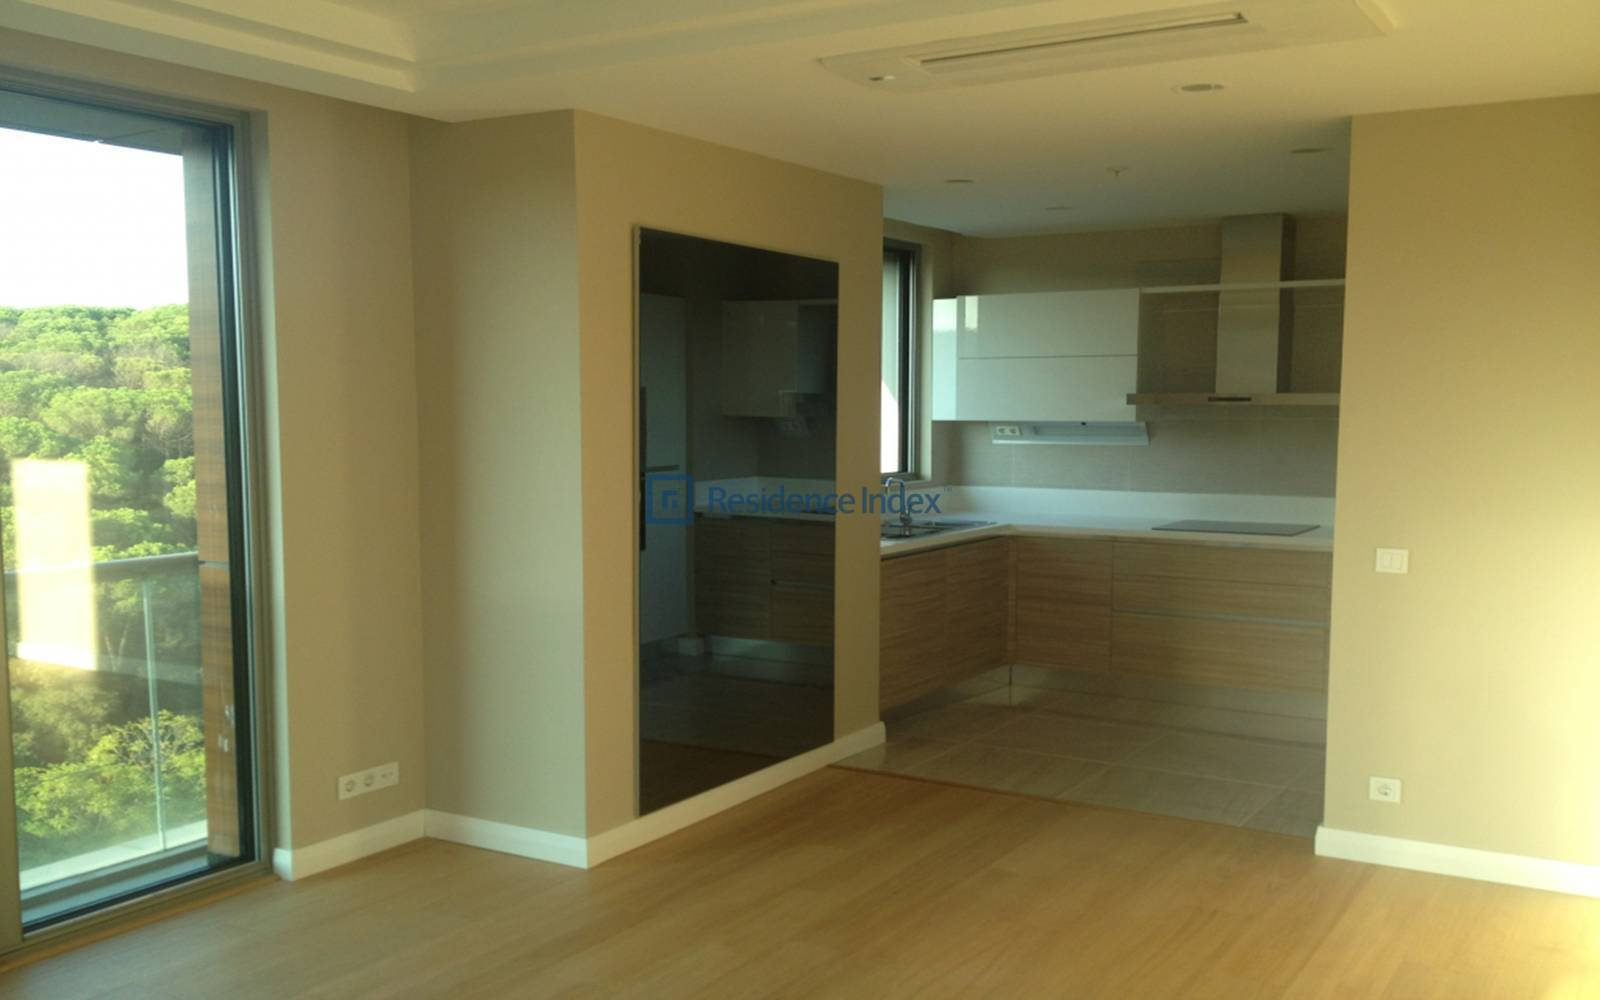 1 + 1 Apartment For Sale in Vadistanbul